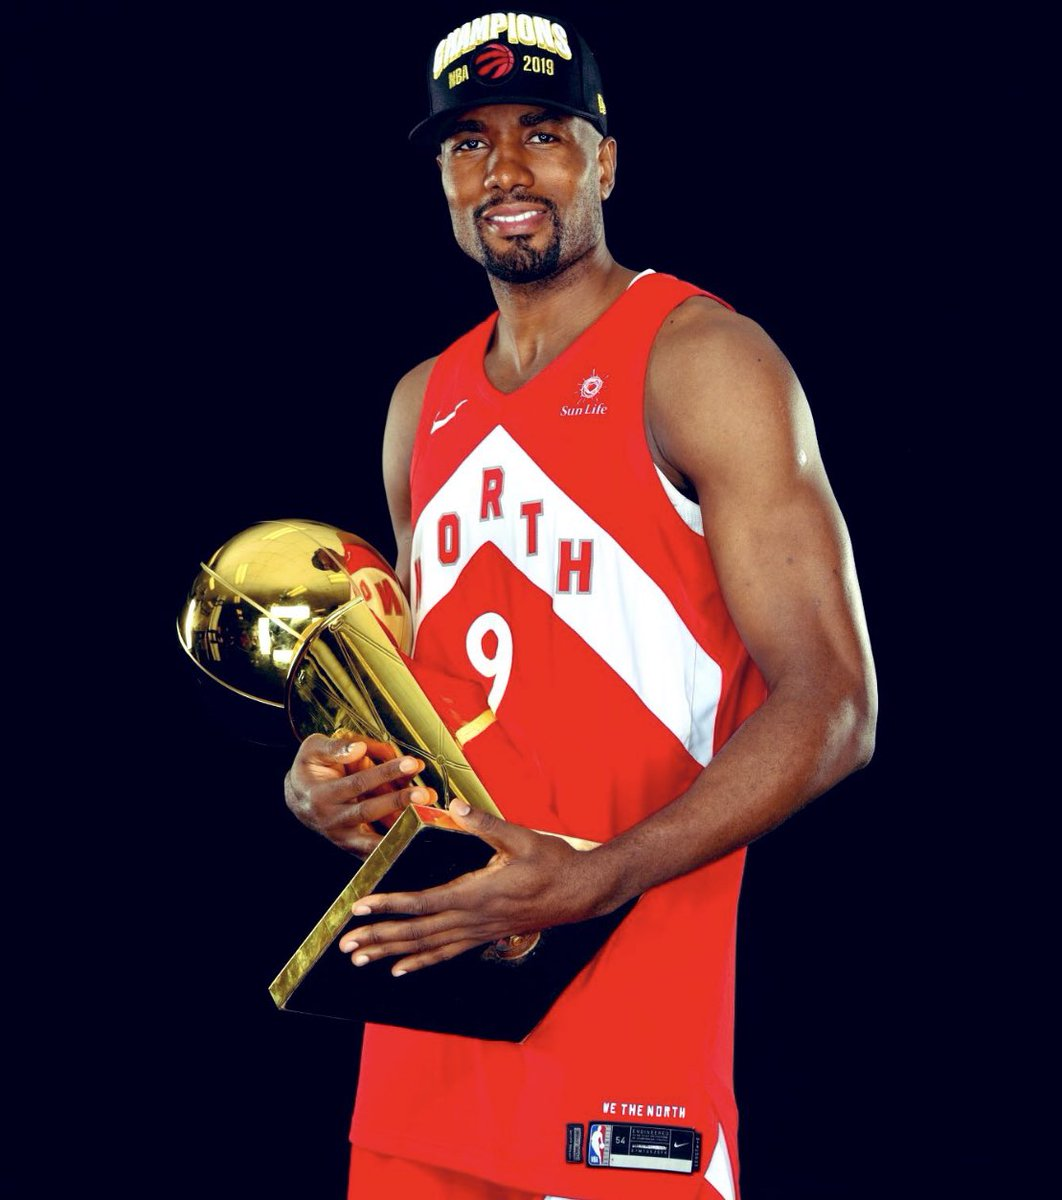 A kid from Congo, becoming an NBA Champion is sureal. I was not supposed to be here but I never lost faith. This is a dream come true but also an opportunity for me to remind every kid in Congo, in Africa and everywhere that anything is possible. Thank you Toronto and Canada 🇨🇦